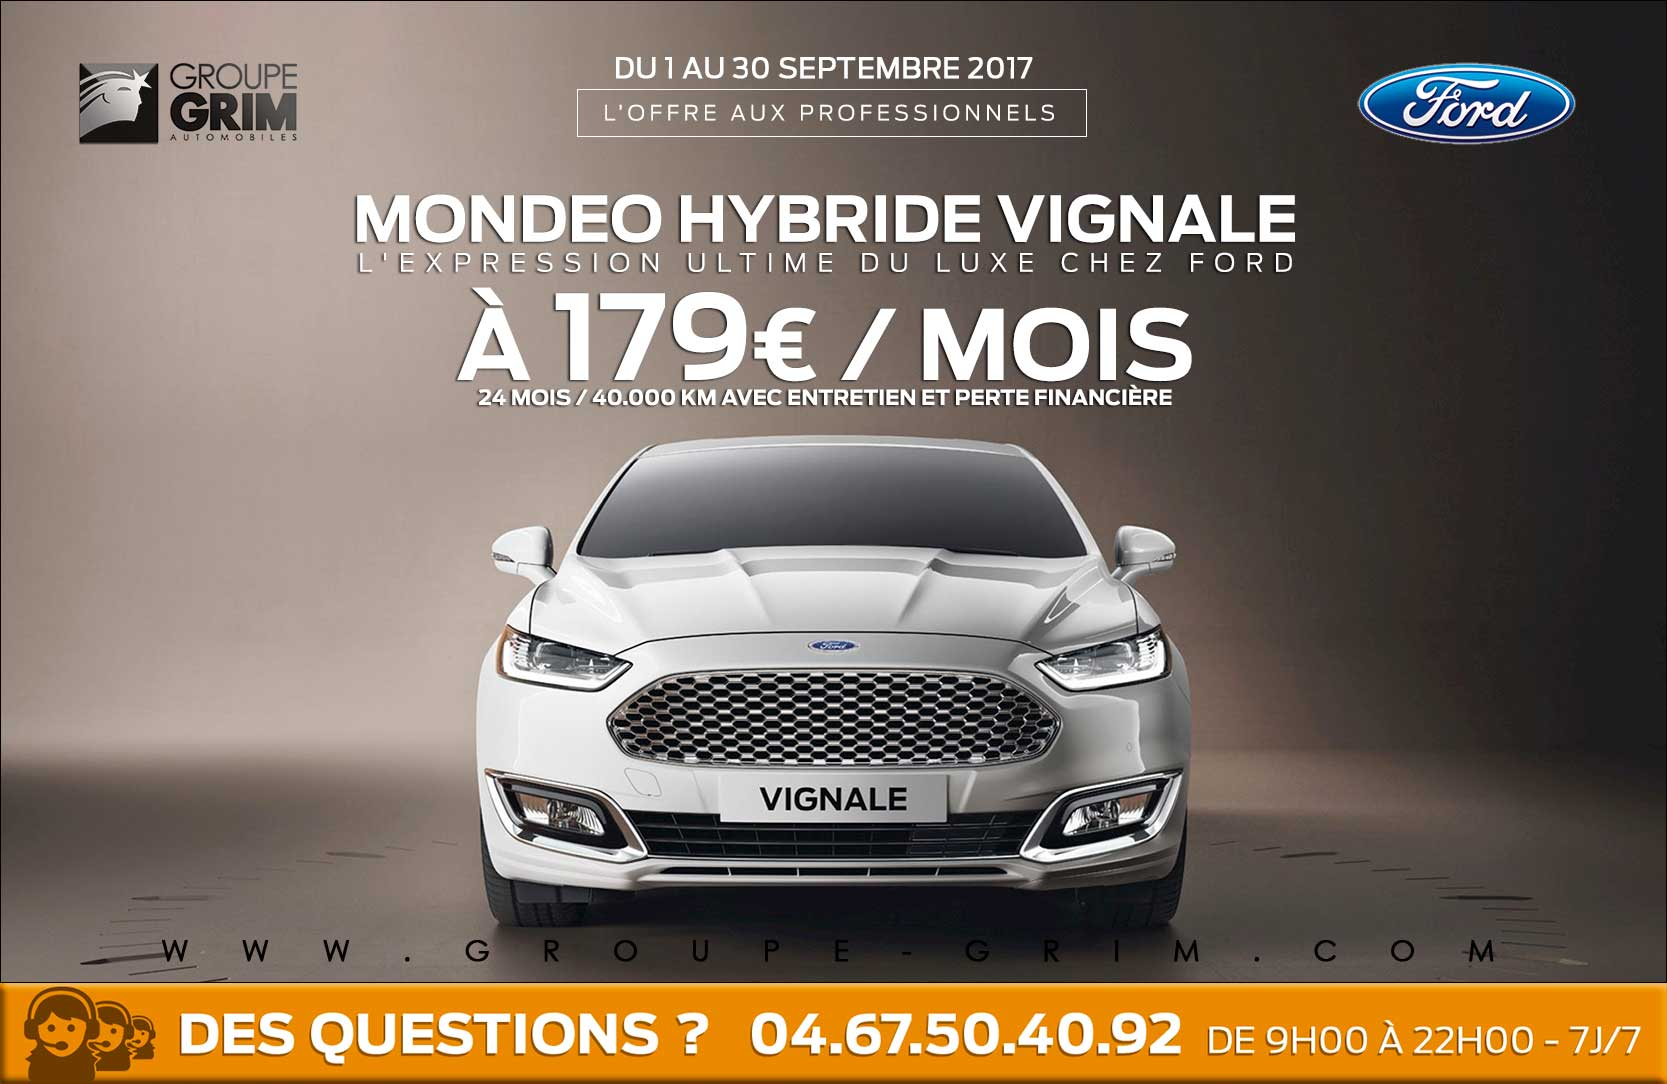 mondeo hybride vignale a 179 mois ford grim auto savab saval fordstore. Black Bedroom Furniture Sets. Home Design Ideas